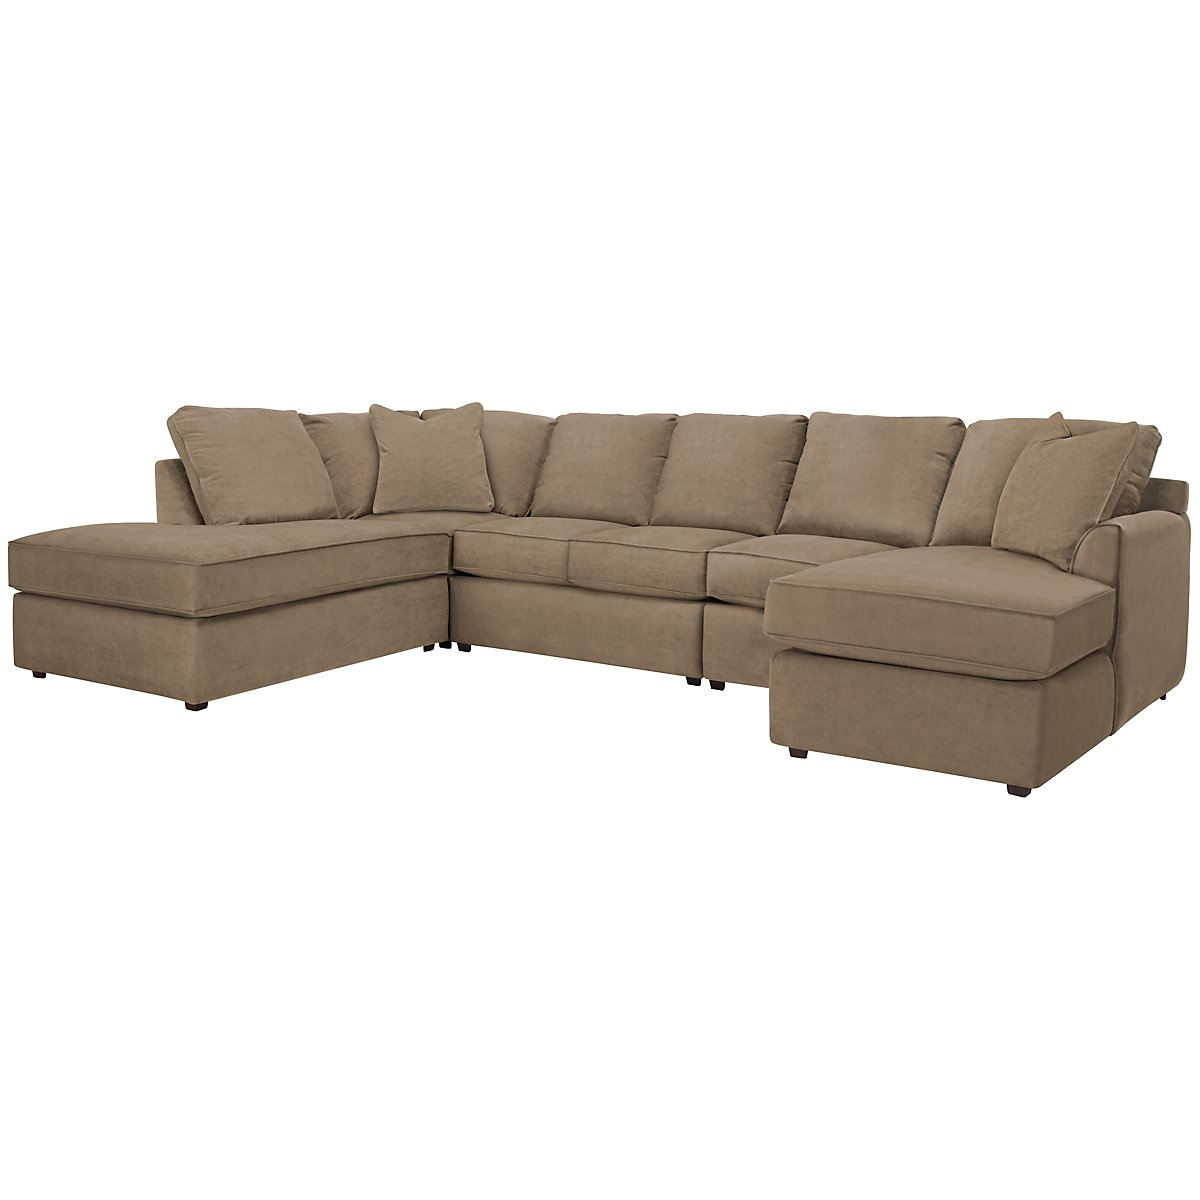 Express3 Light Brown Microfiber Large Left Bumper Sectional